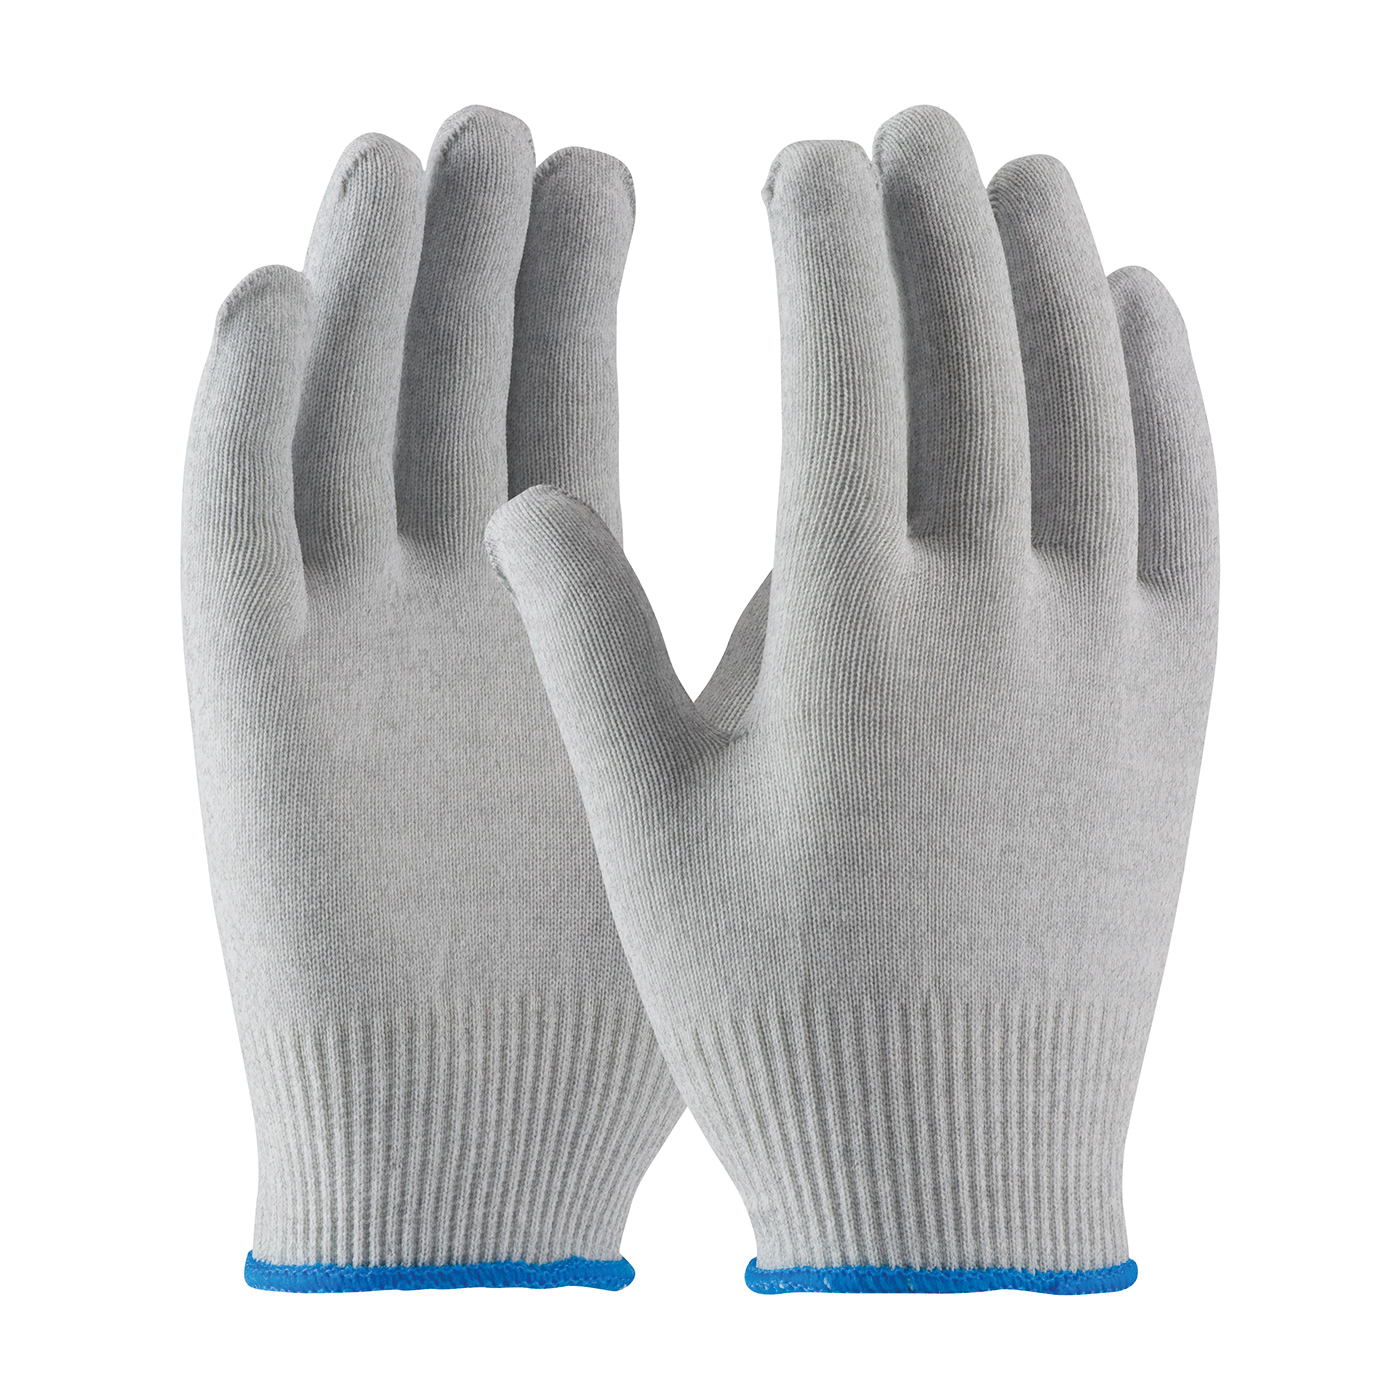 PIP® CleanTeam® 40-6410/XXL Electrostatic Dissipative Antistatic Gloves, Full Finger/Seamless Style, Carbon Fiber/Nylon/Synthetic, Gray/White, Continuous Knit Wrist Cuff, Uncoated Coating, 9.3 in L, Resists: Electrical Surface, ASTM D-257:2007, Paired Hand